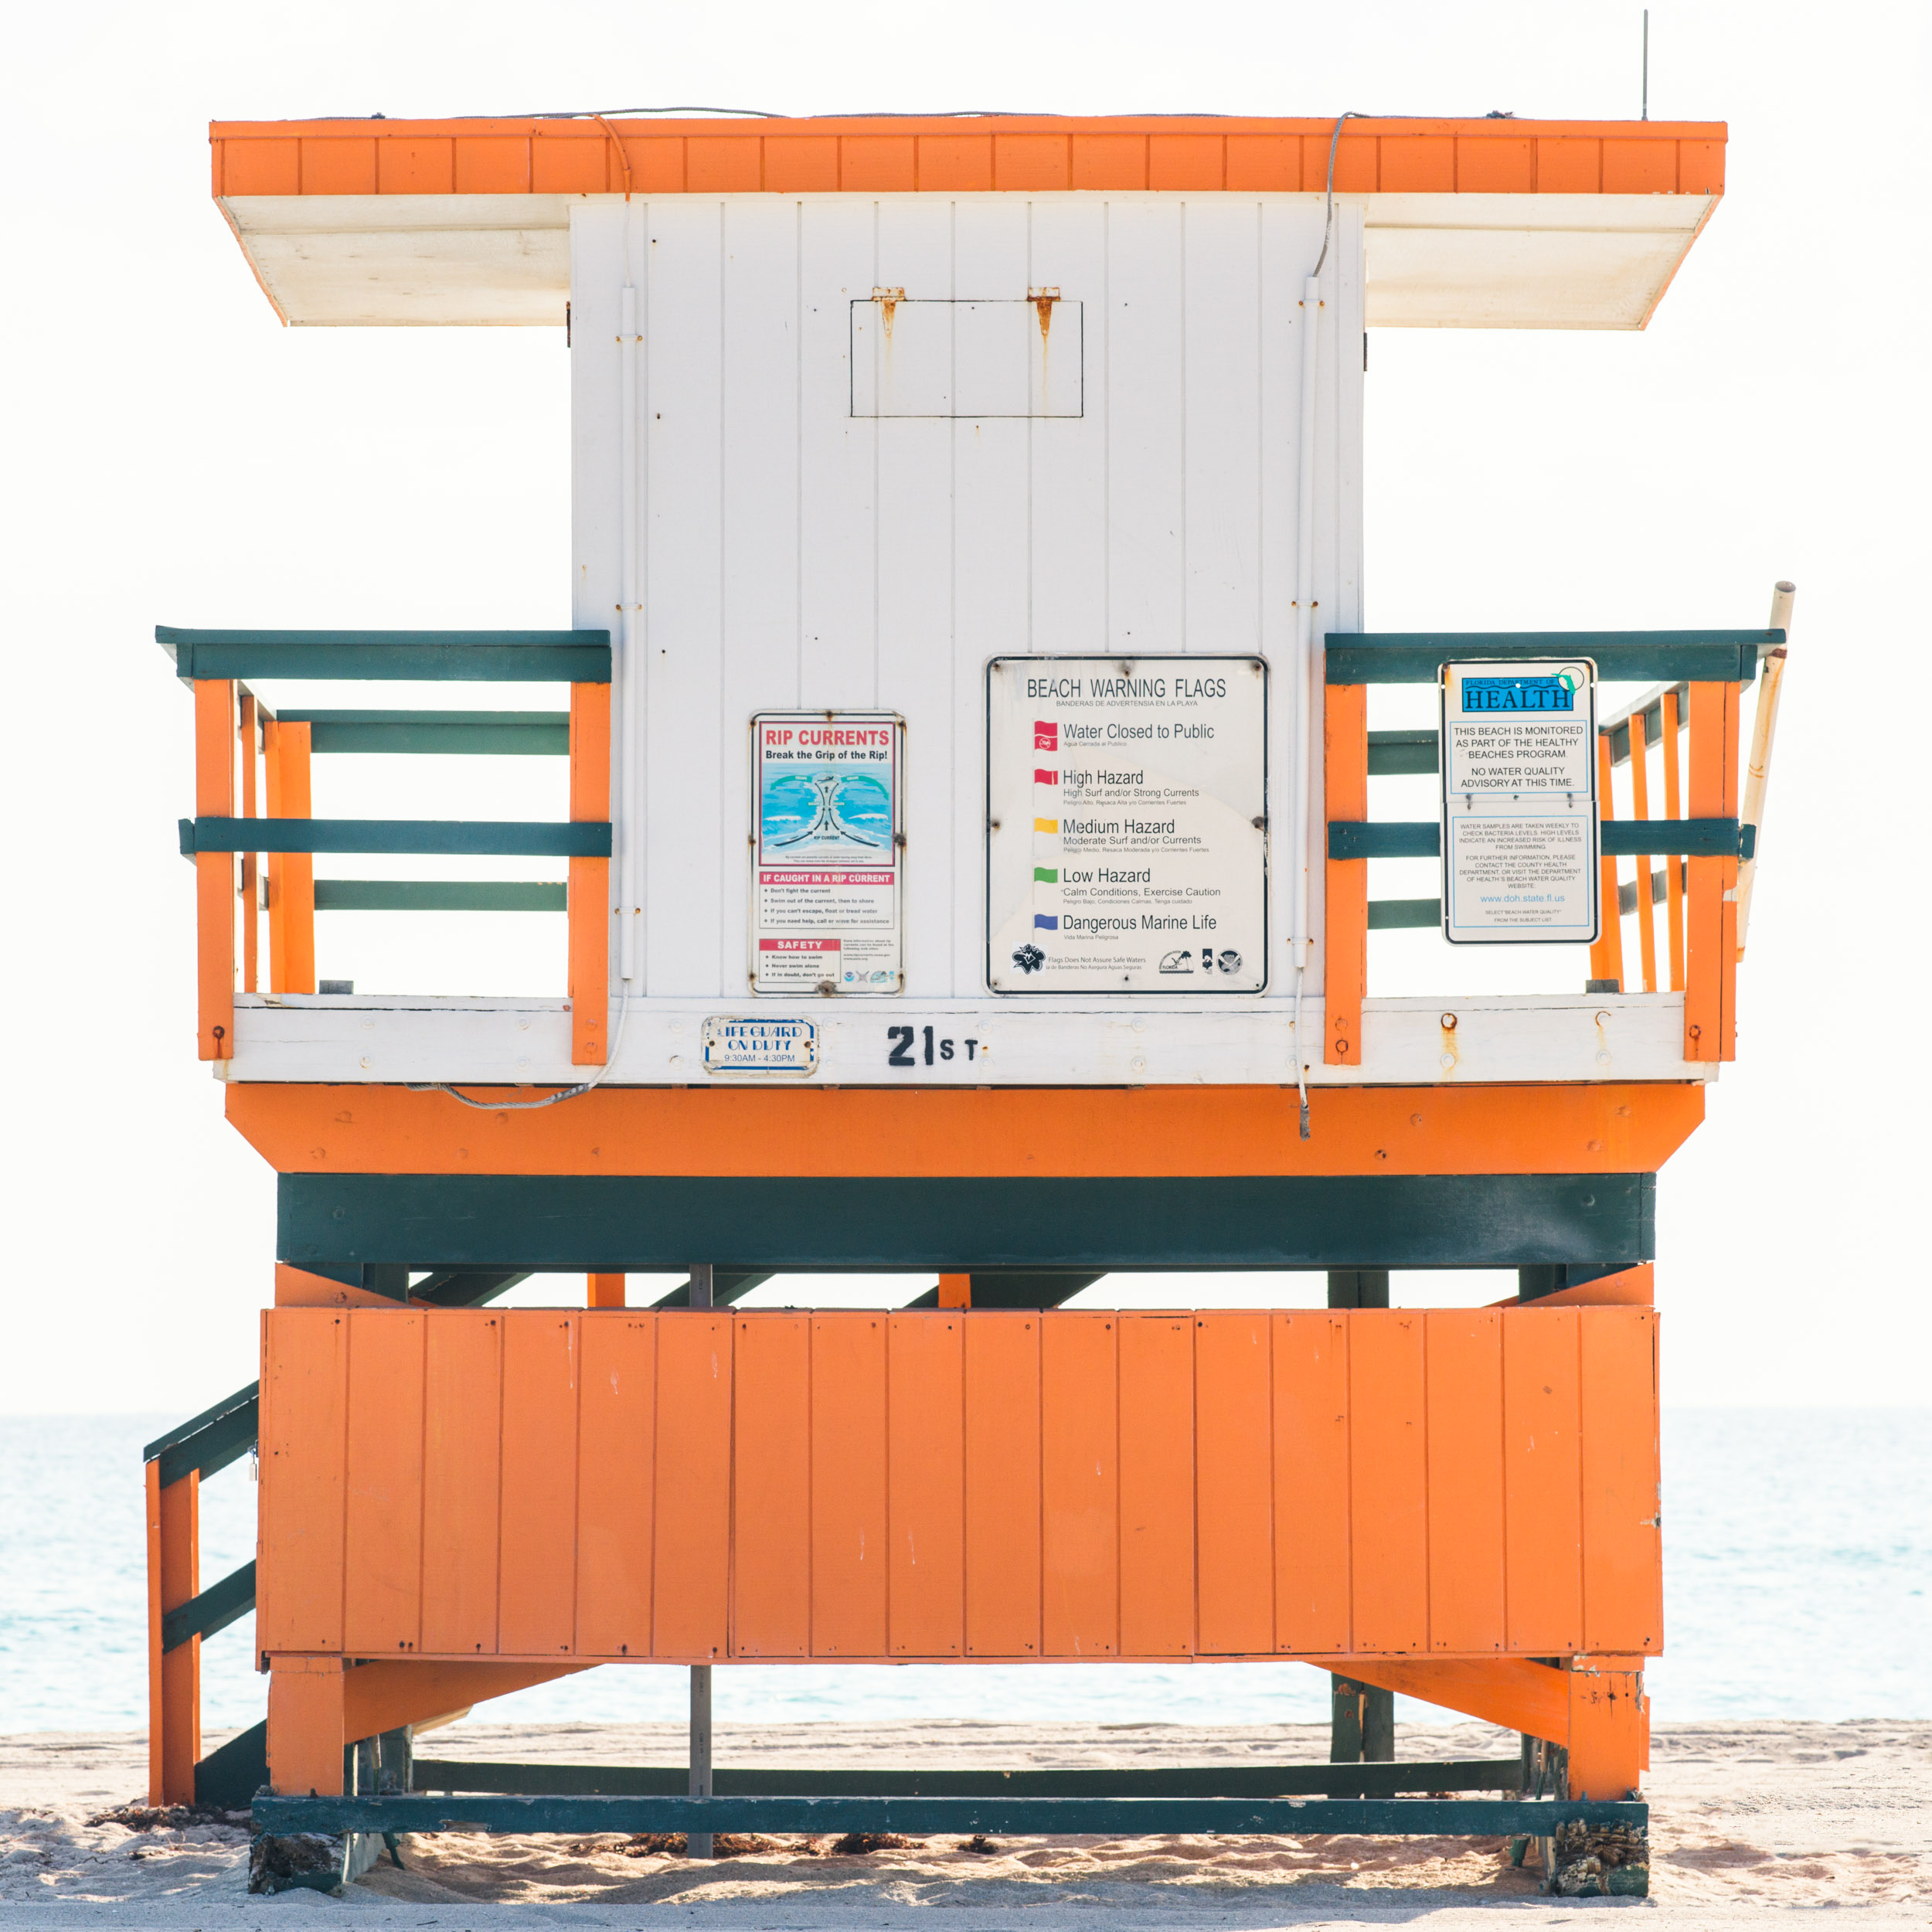 21st St. Miami Lifeguard Stand - Rear View